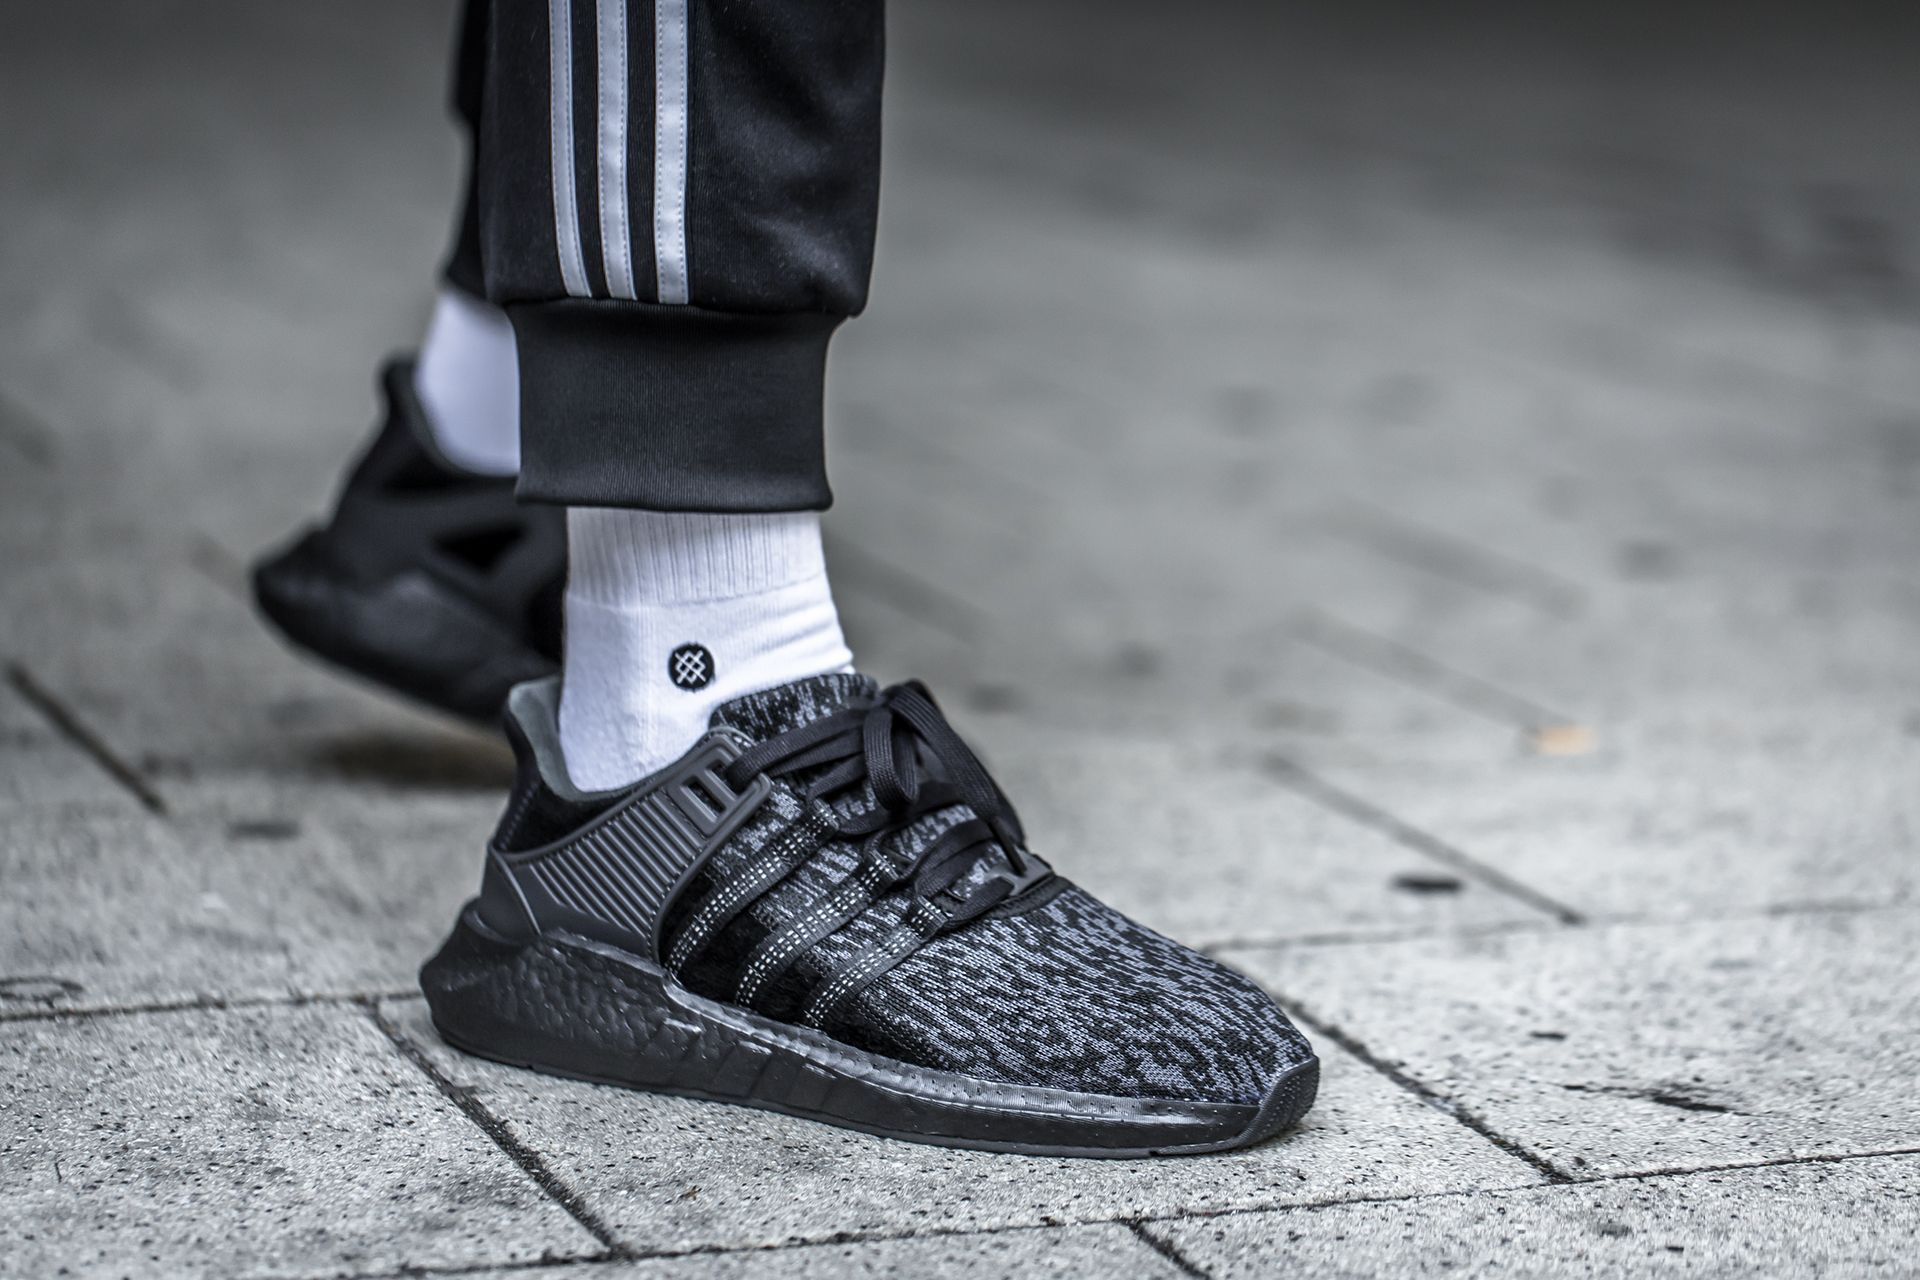 sale retailer 70925 904ad adidas EQT Support 93/17 Triple Black | adidas in 2019 ...